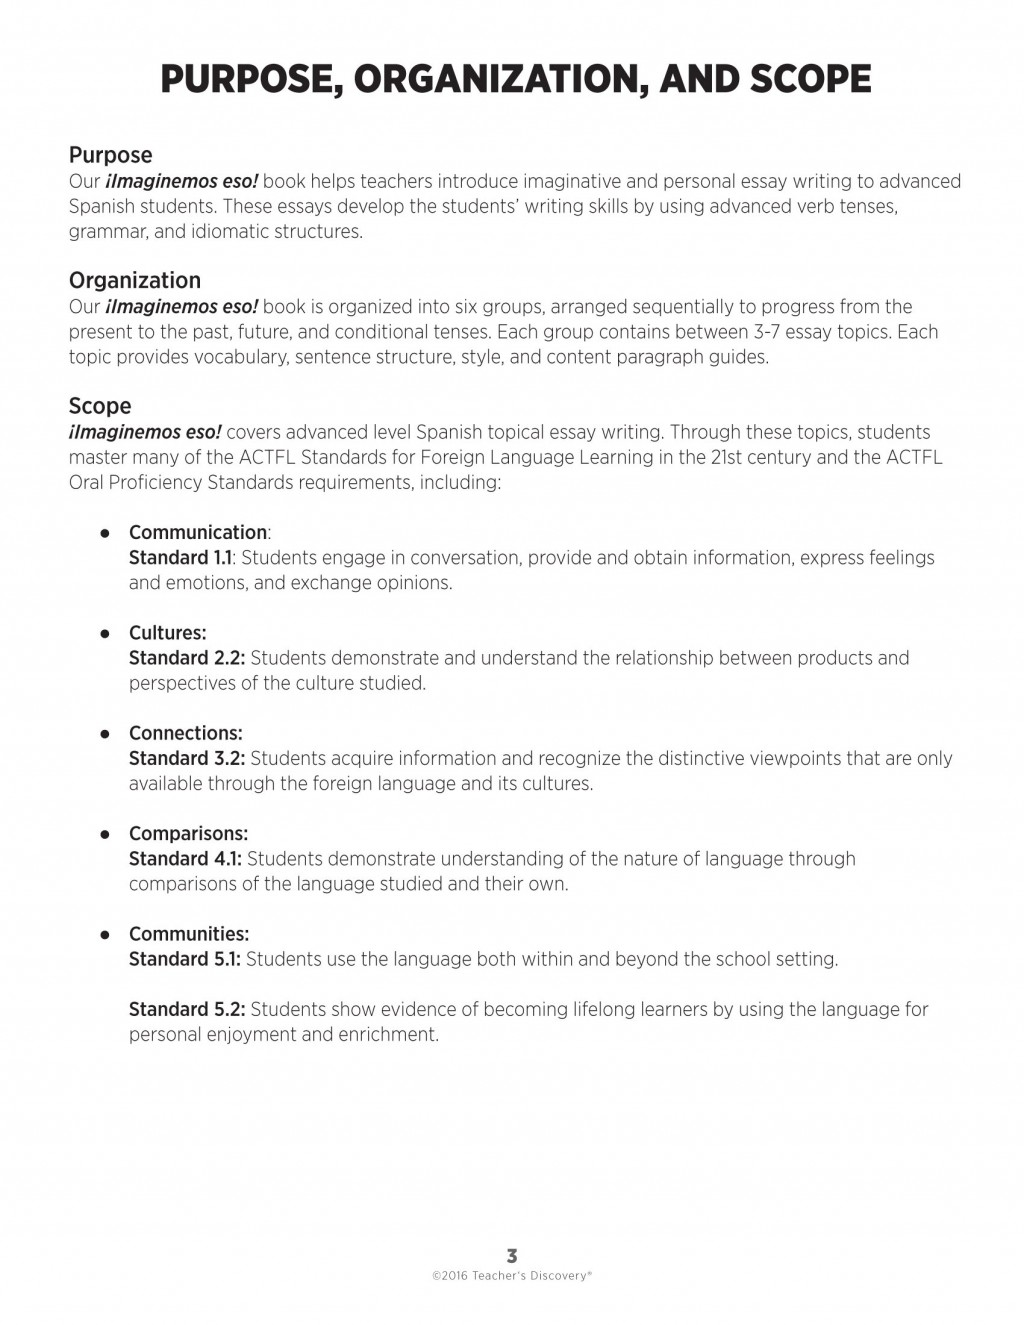 017 Essay Spanish Book Report Template In High Quality Templates Teaching Writing New Essays Imaginemos Eso Guided Books Phrases Write Your Google Translate An Tips My How To About Marvelous Urban Dictionary Joke Spanishdict Large